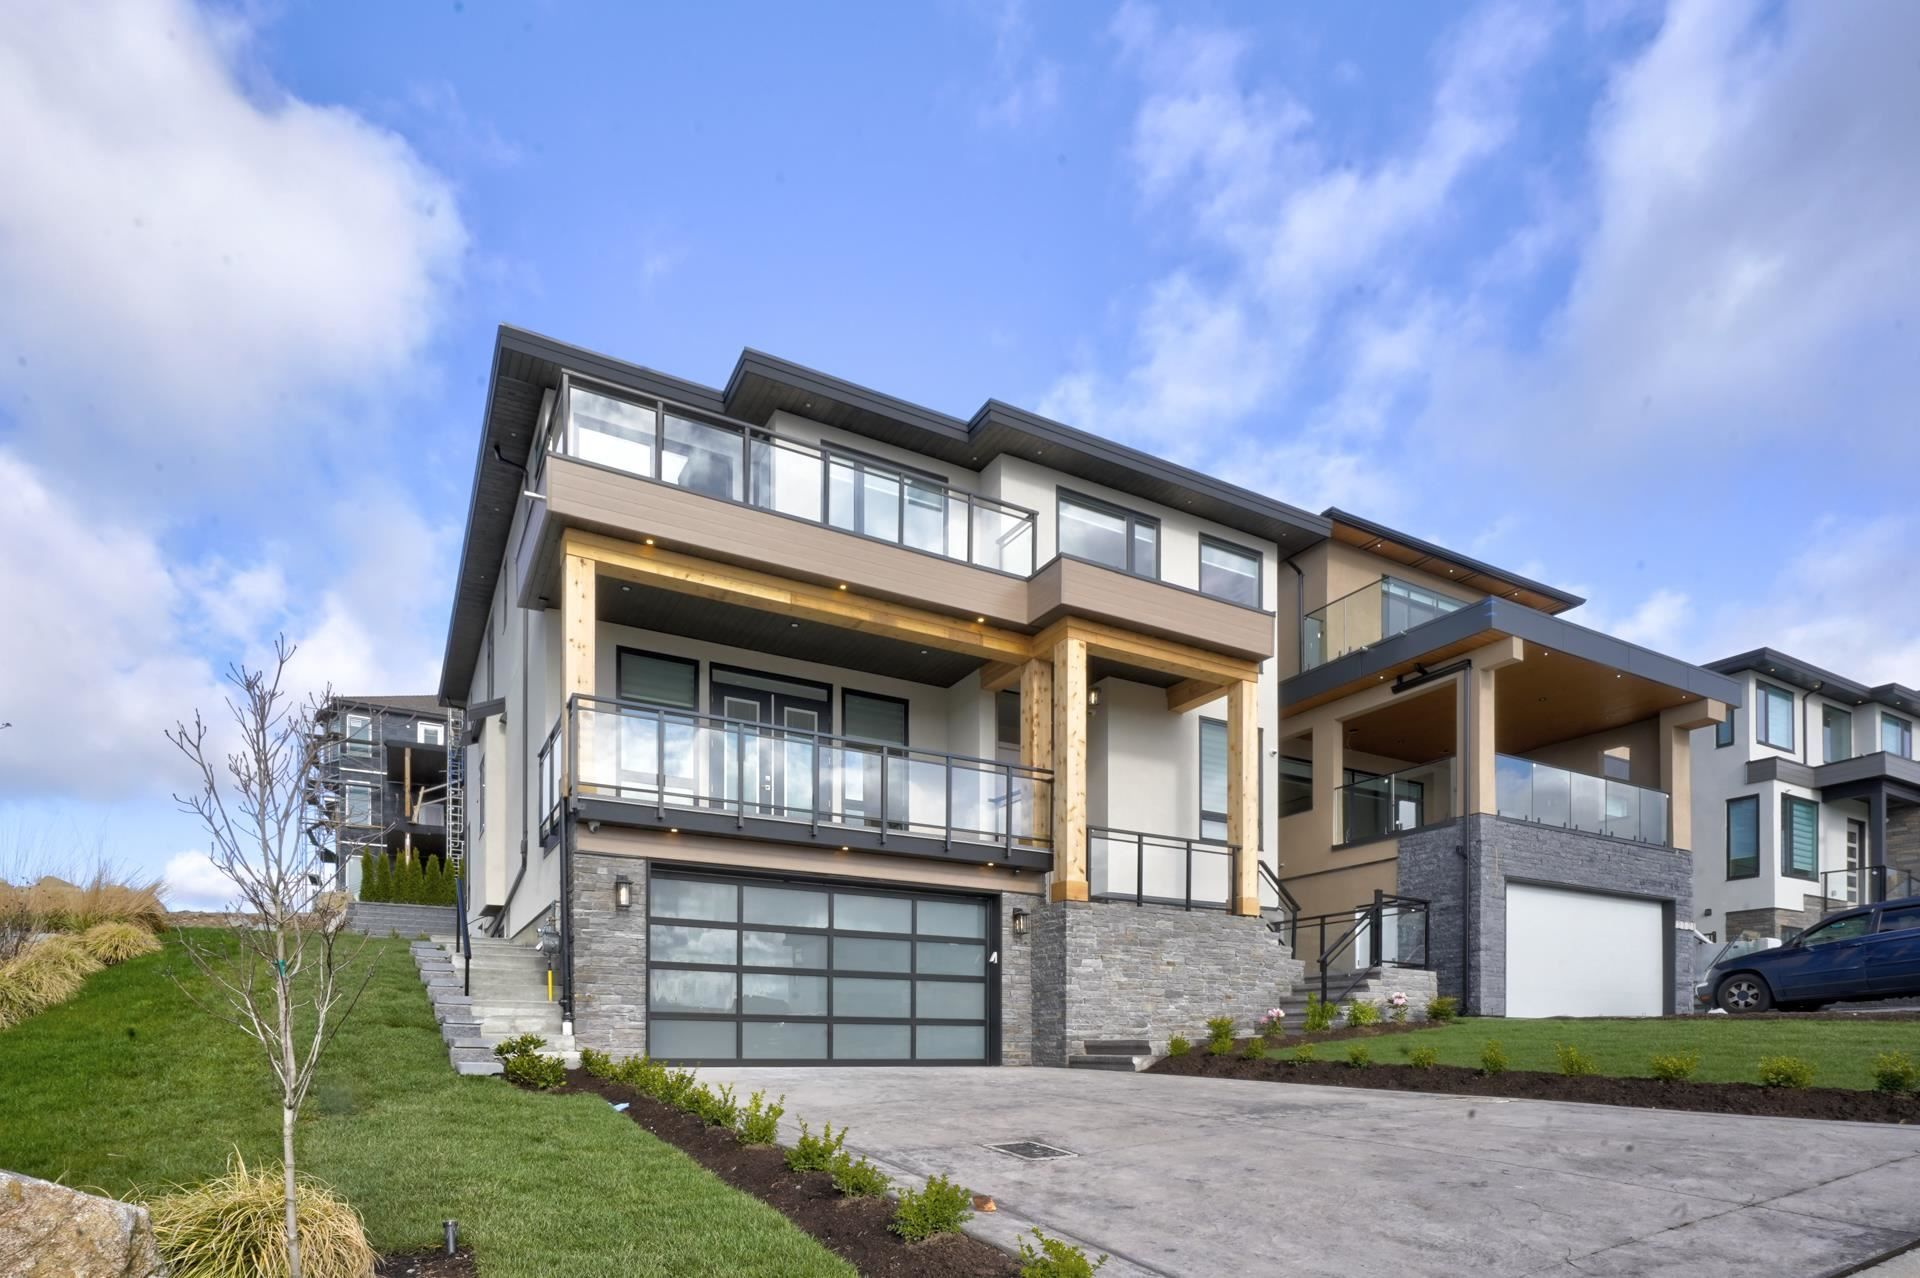 """Main Photo: 2715 MONTANA Place in Abbotsford: Abbotsford East House for sale in """"MCMILLAN / MOUNTAIN"""" : MLS®# R2601418"""